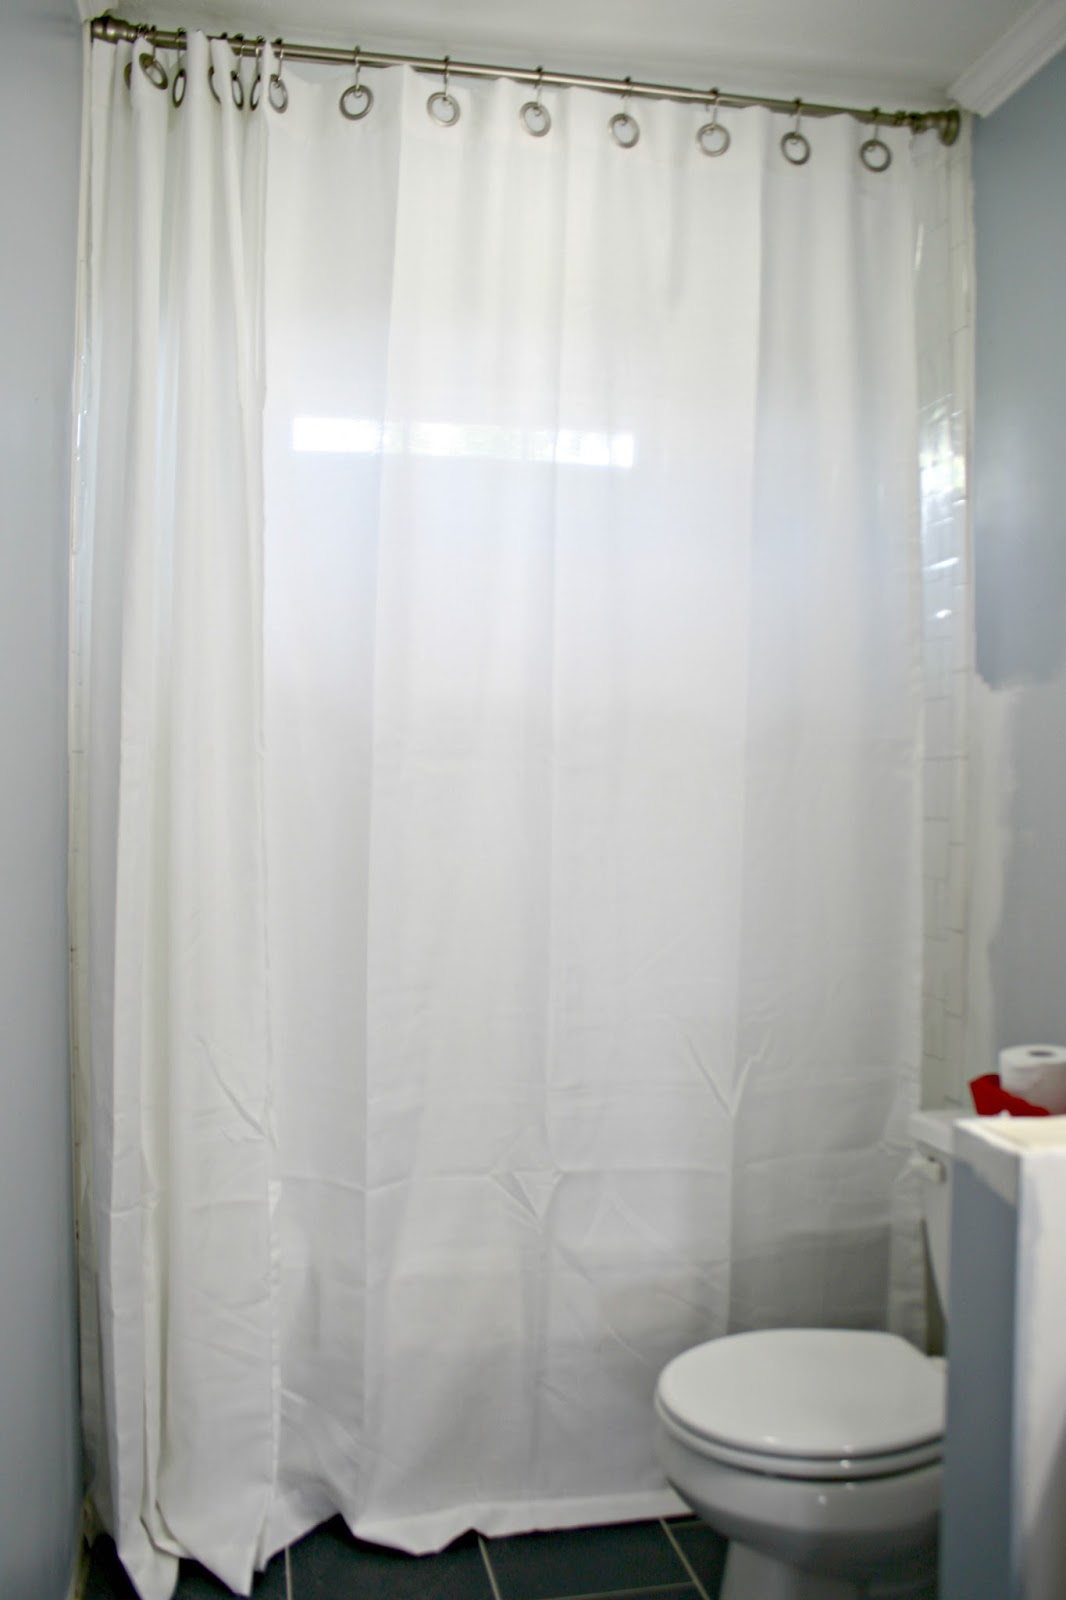 Curtain For Double Window How To Hang Double Shower Curtains For Less From Thrifty Decor